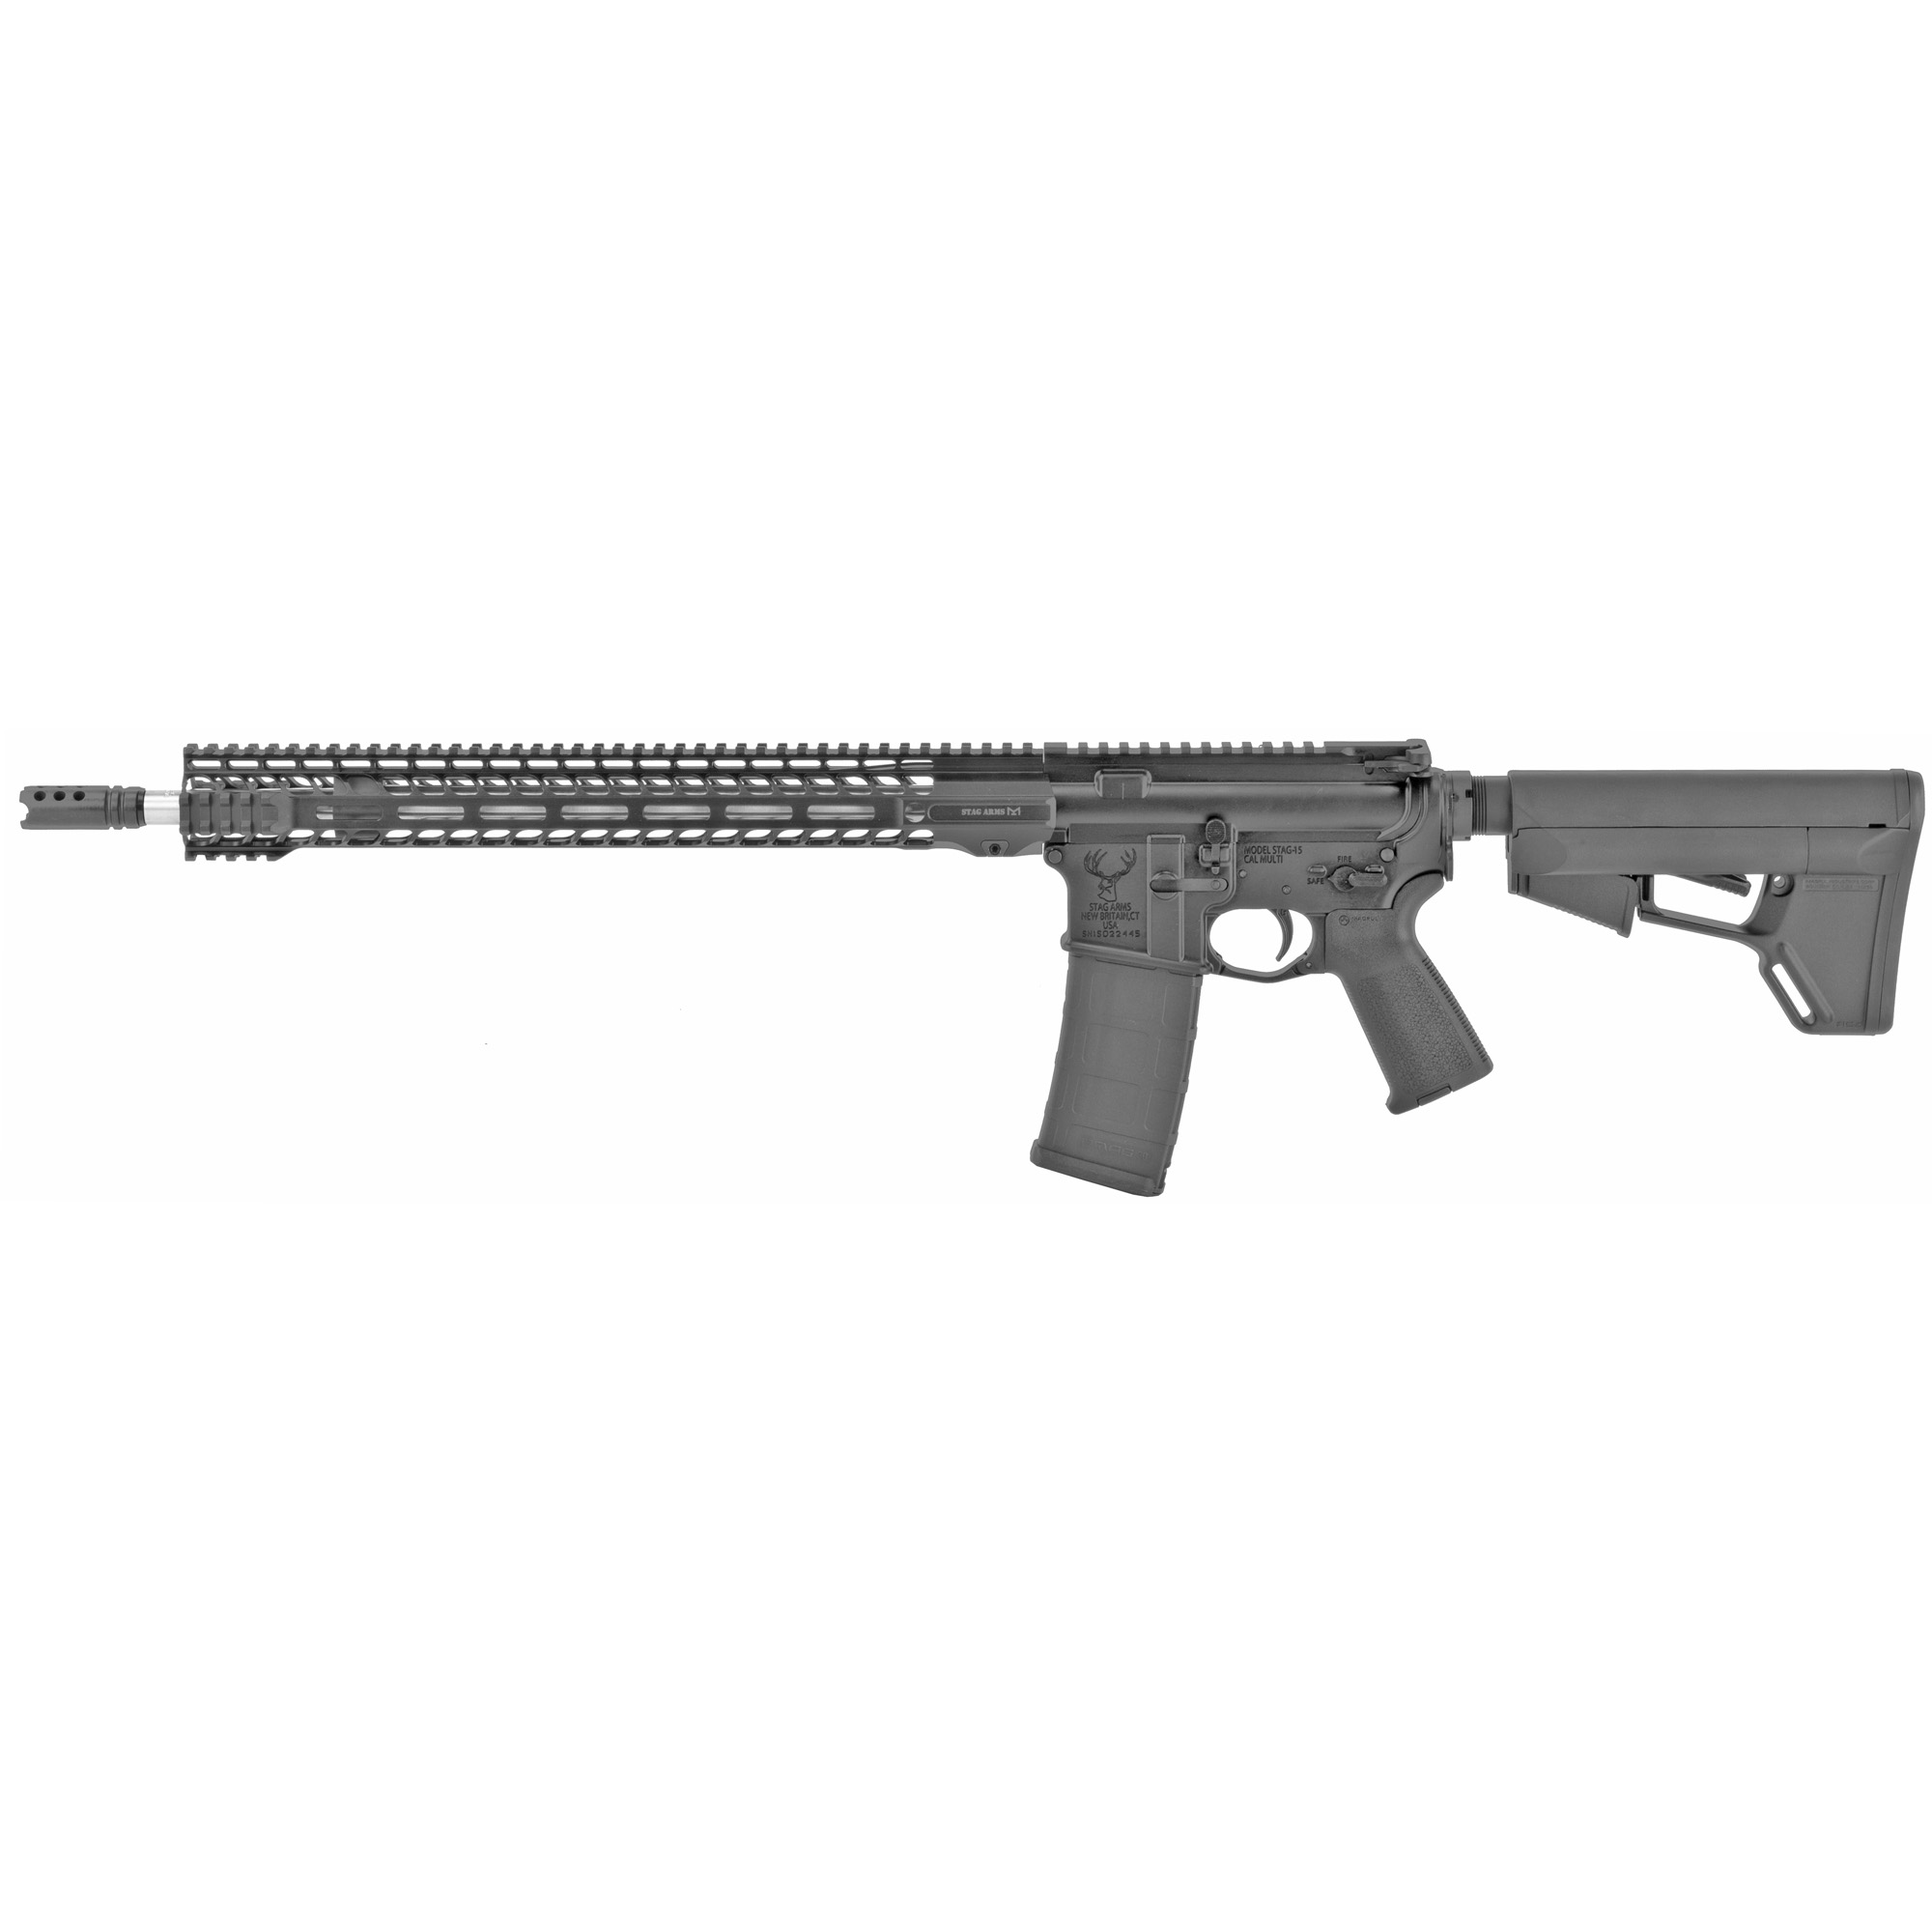 "The Stag 15 3Gun Elite was designed specifically for 3-Gun competitions where fast and accurate shooting is required. It features the all-new Stag 15 M-LOK SL 16.5"" Handguard which provides a slimline"" lightweight profile with unmatched ergonomics"" airflow"" and modularity."